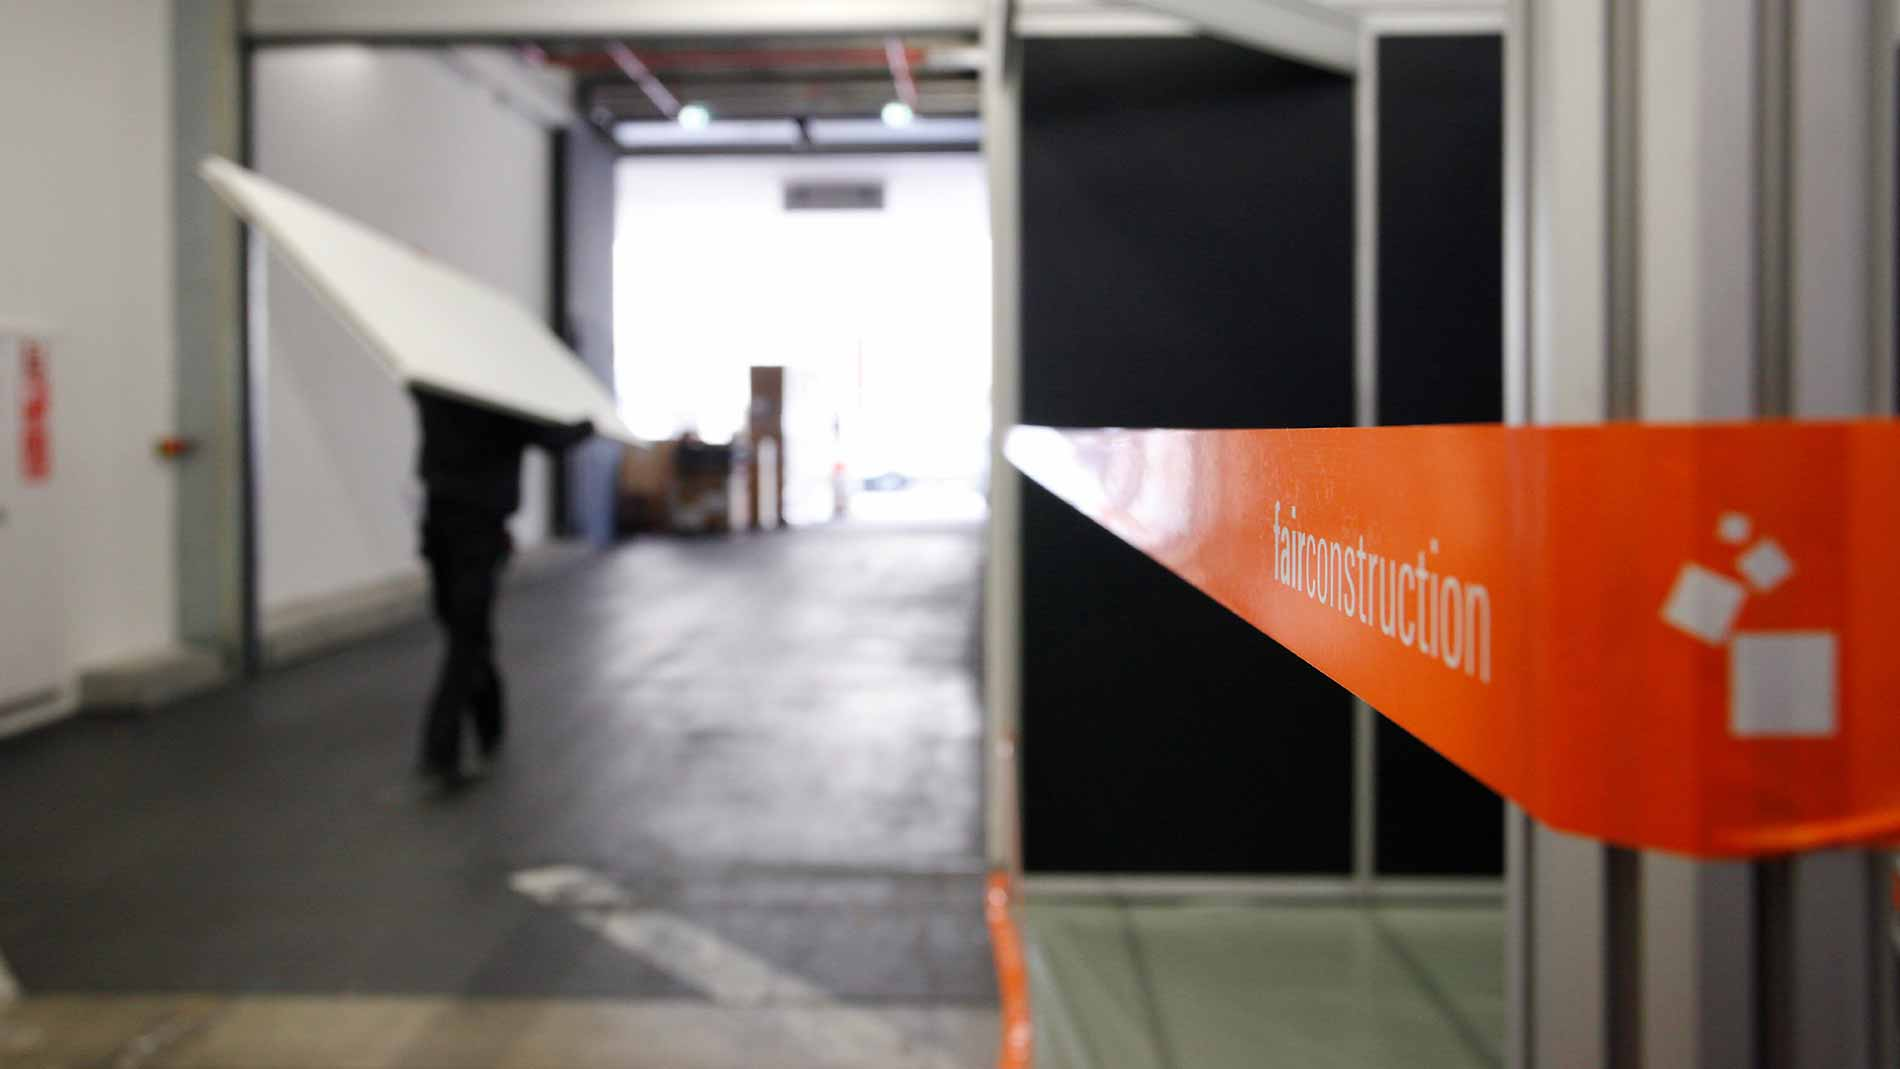 Exhibition construction: Exhibition center with a barrier tape from fairconstruction